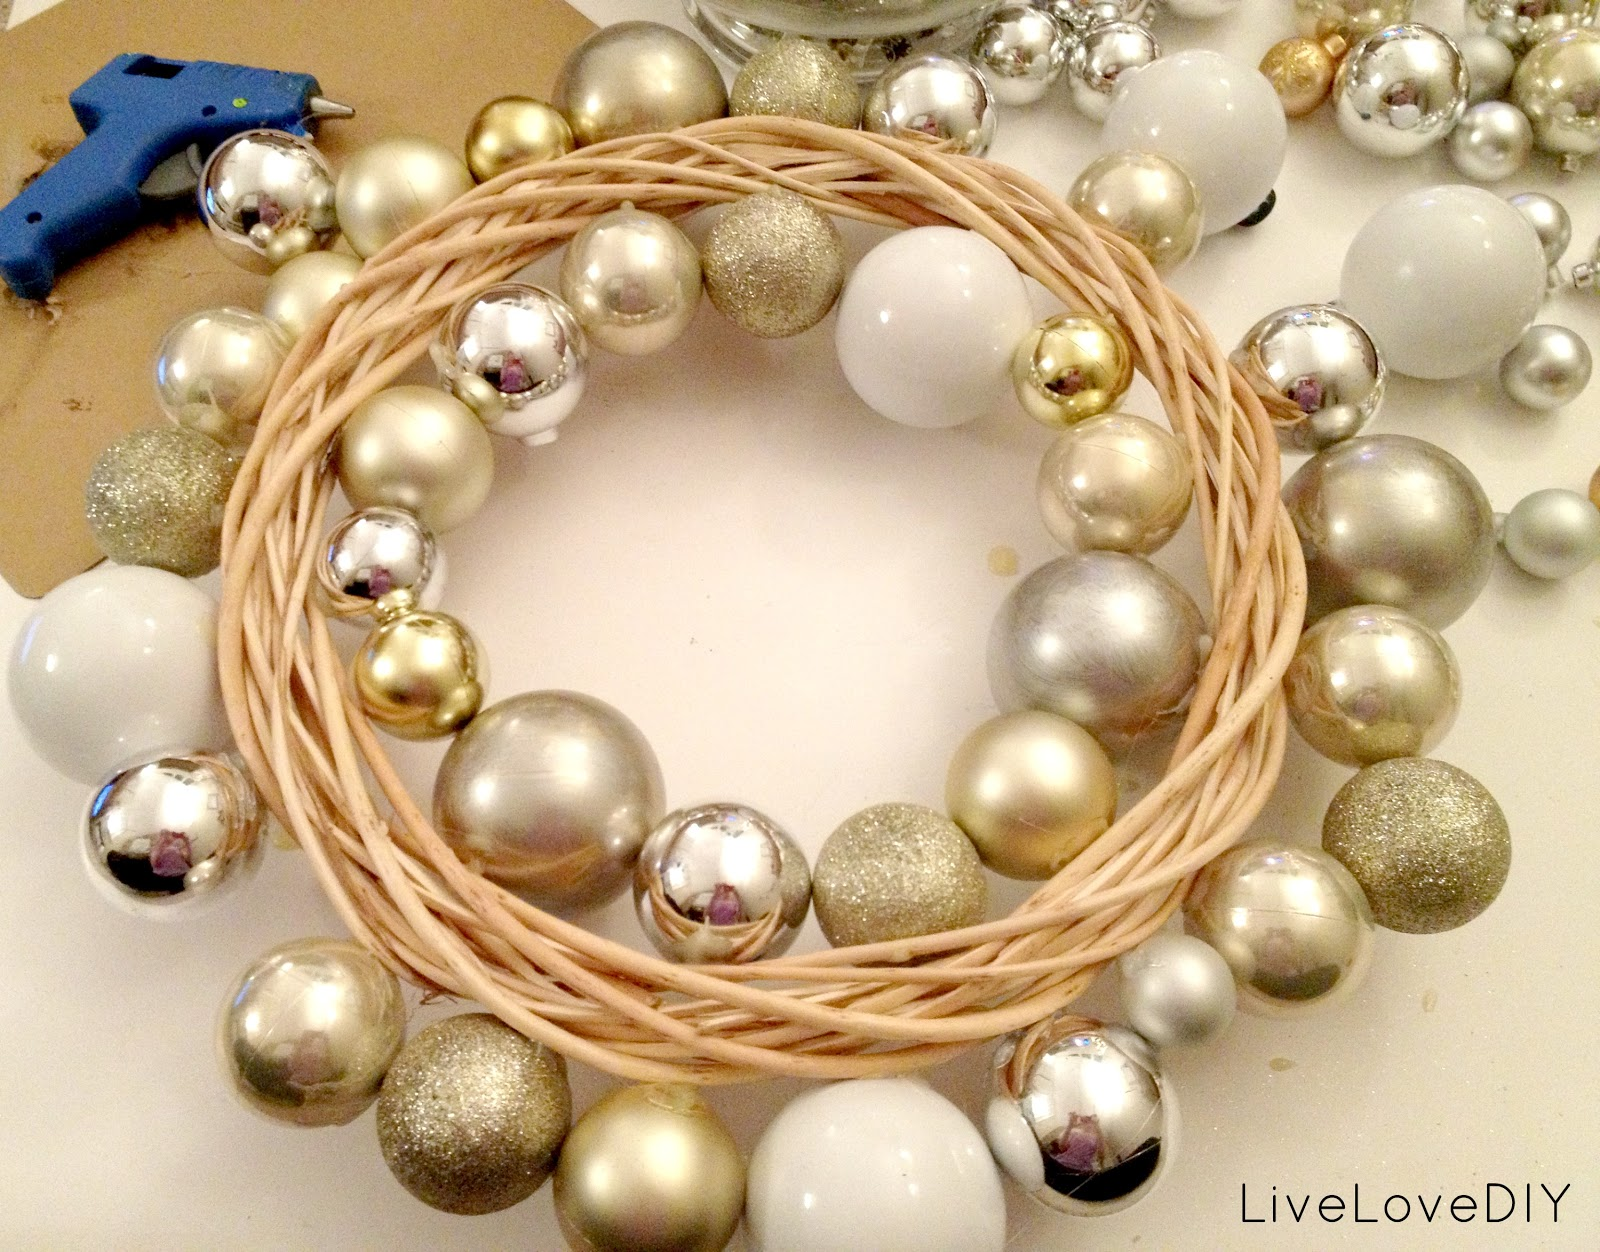 Diy Christmas Decorations Livelovediy How To Make A Christmas Ornament Wreath